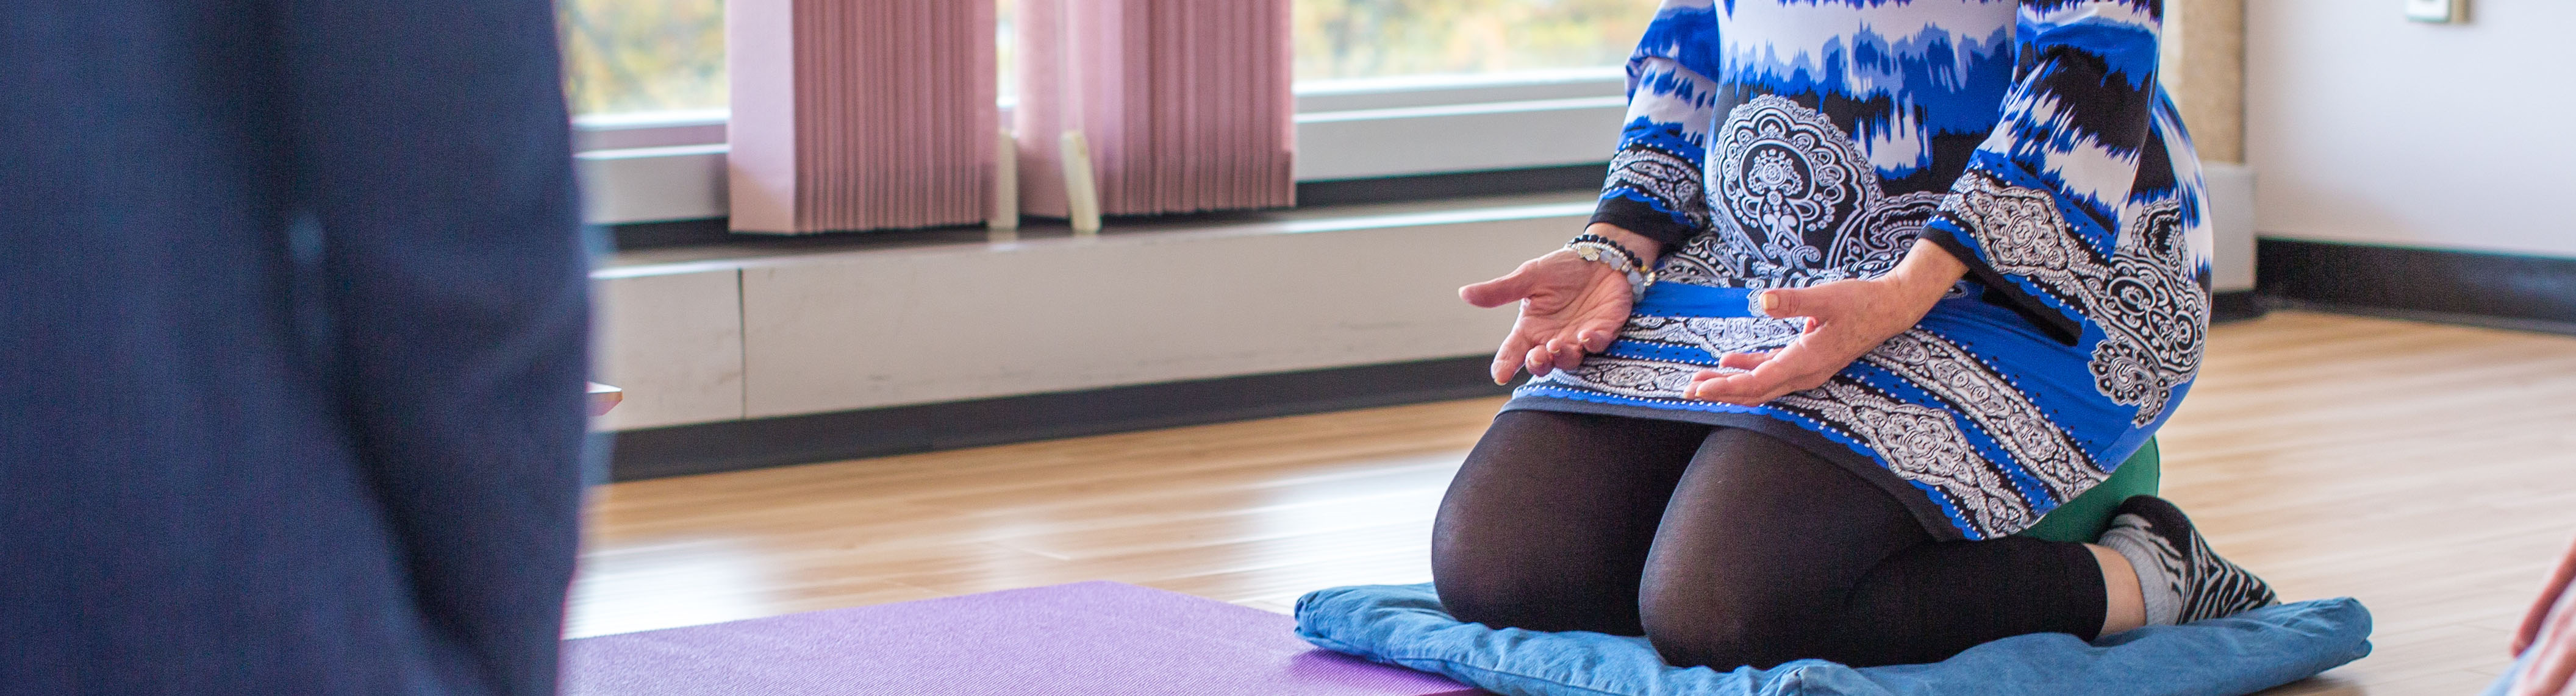 Bottom half of a person kneeling on a mat on the ground with hands facing upwards, meditating.